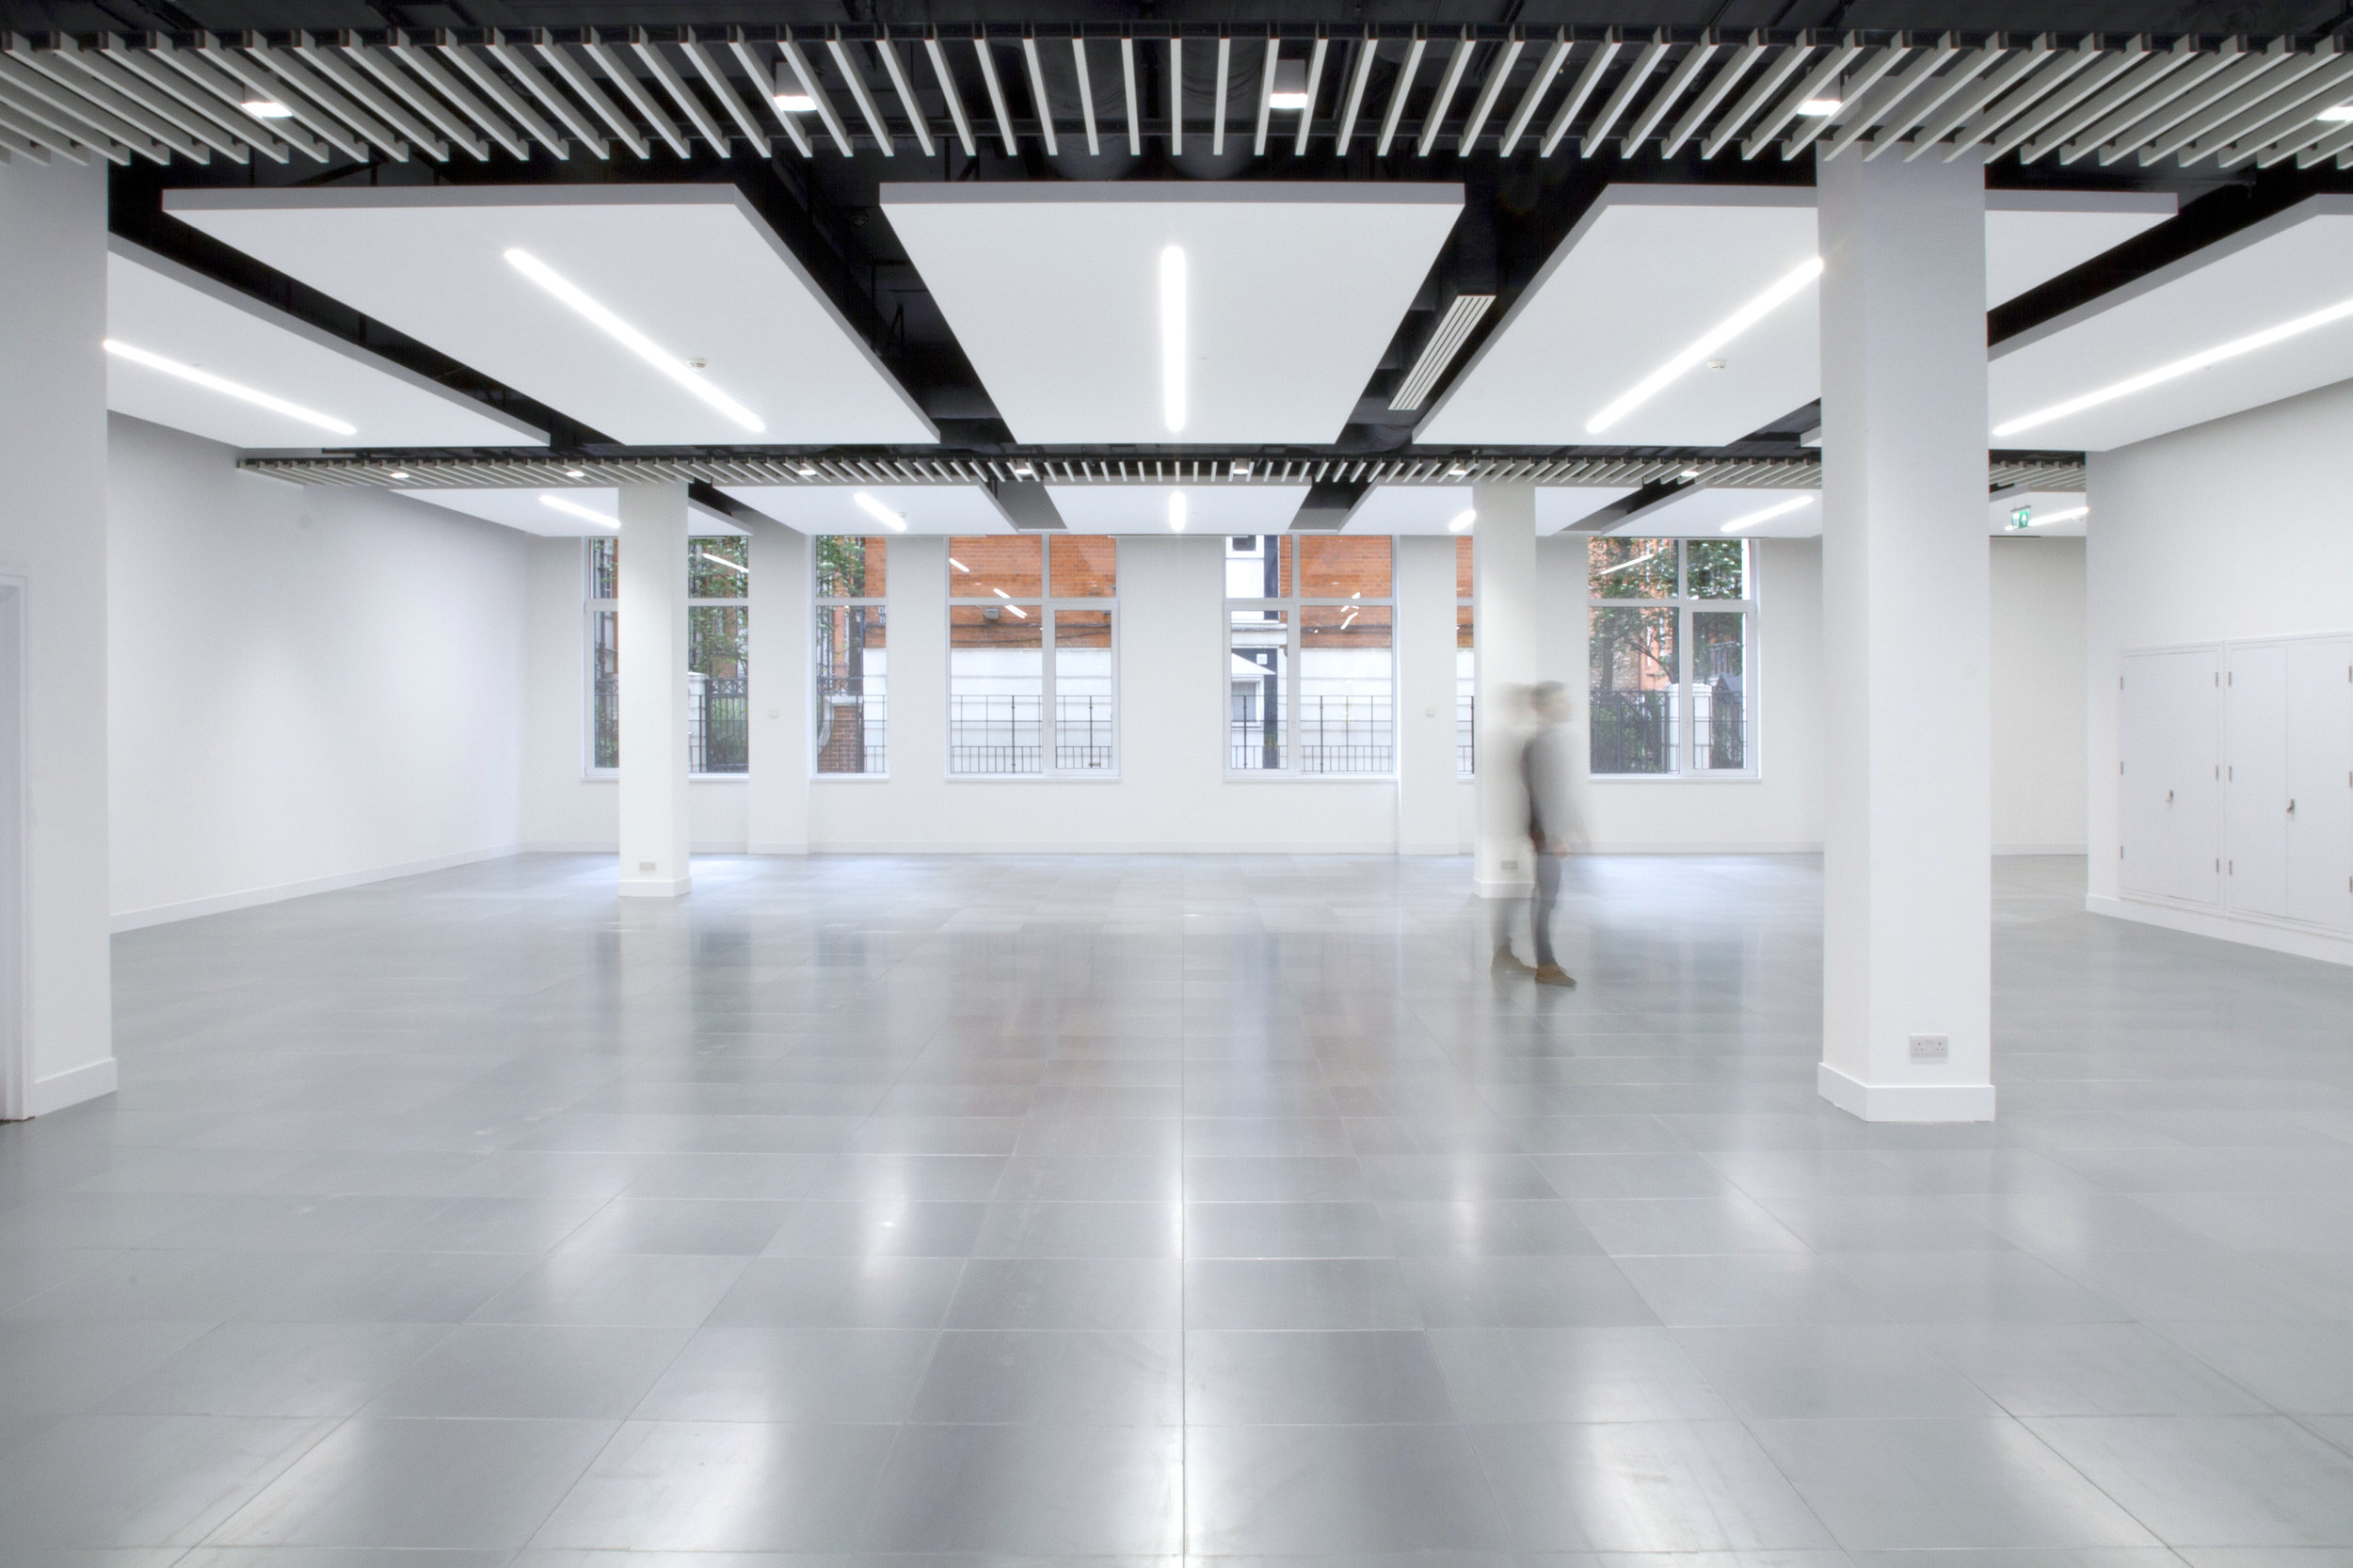 Photograph of fit out at Drury Lane Offices in London